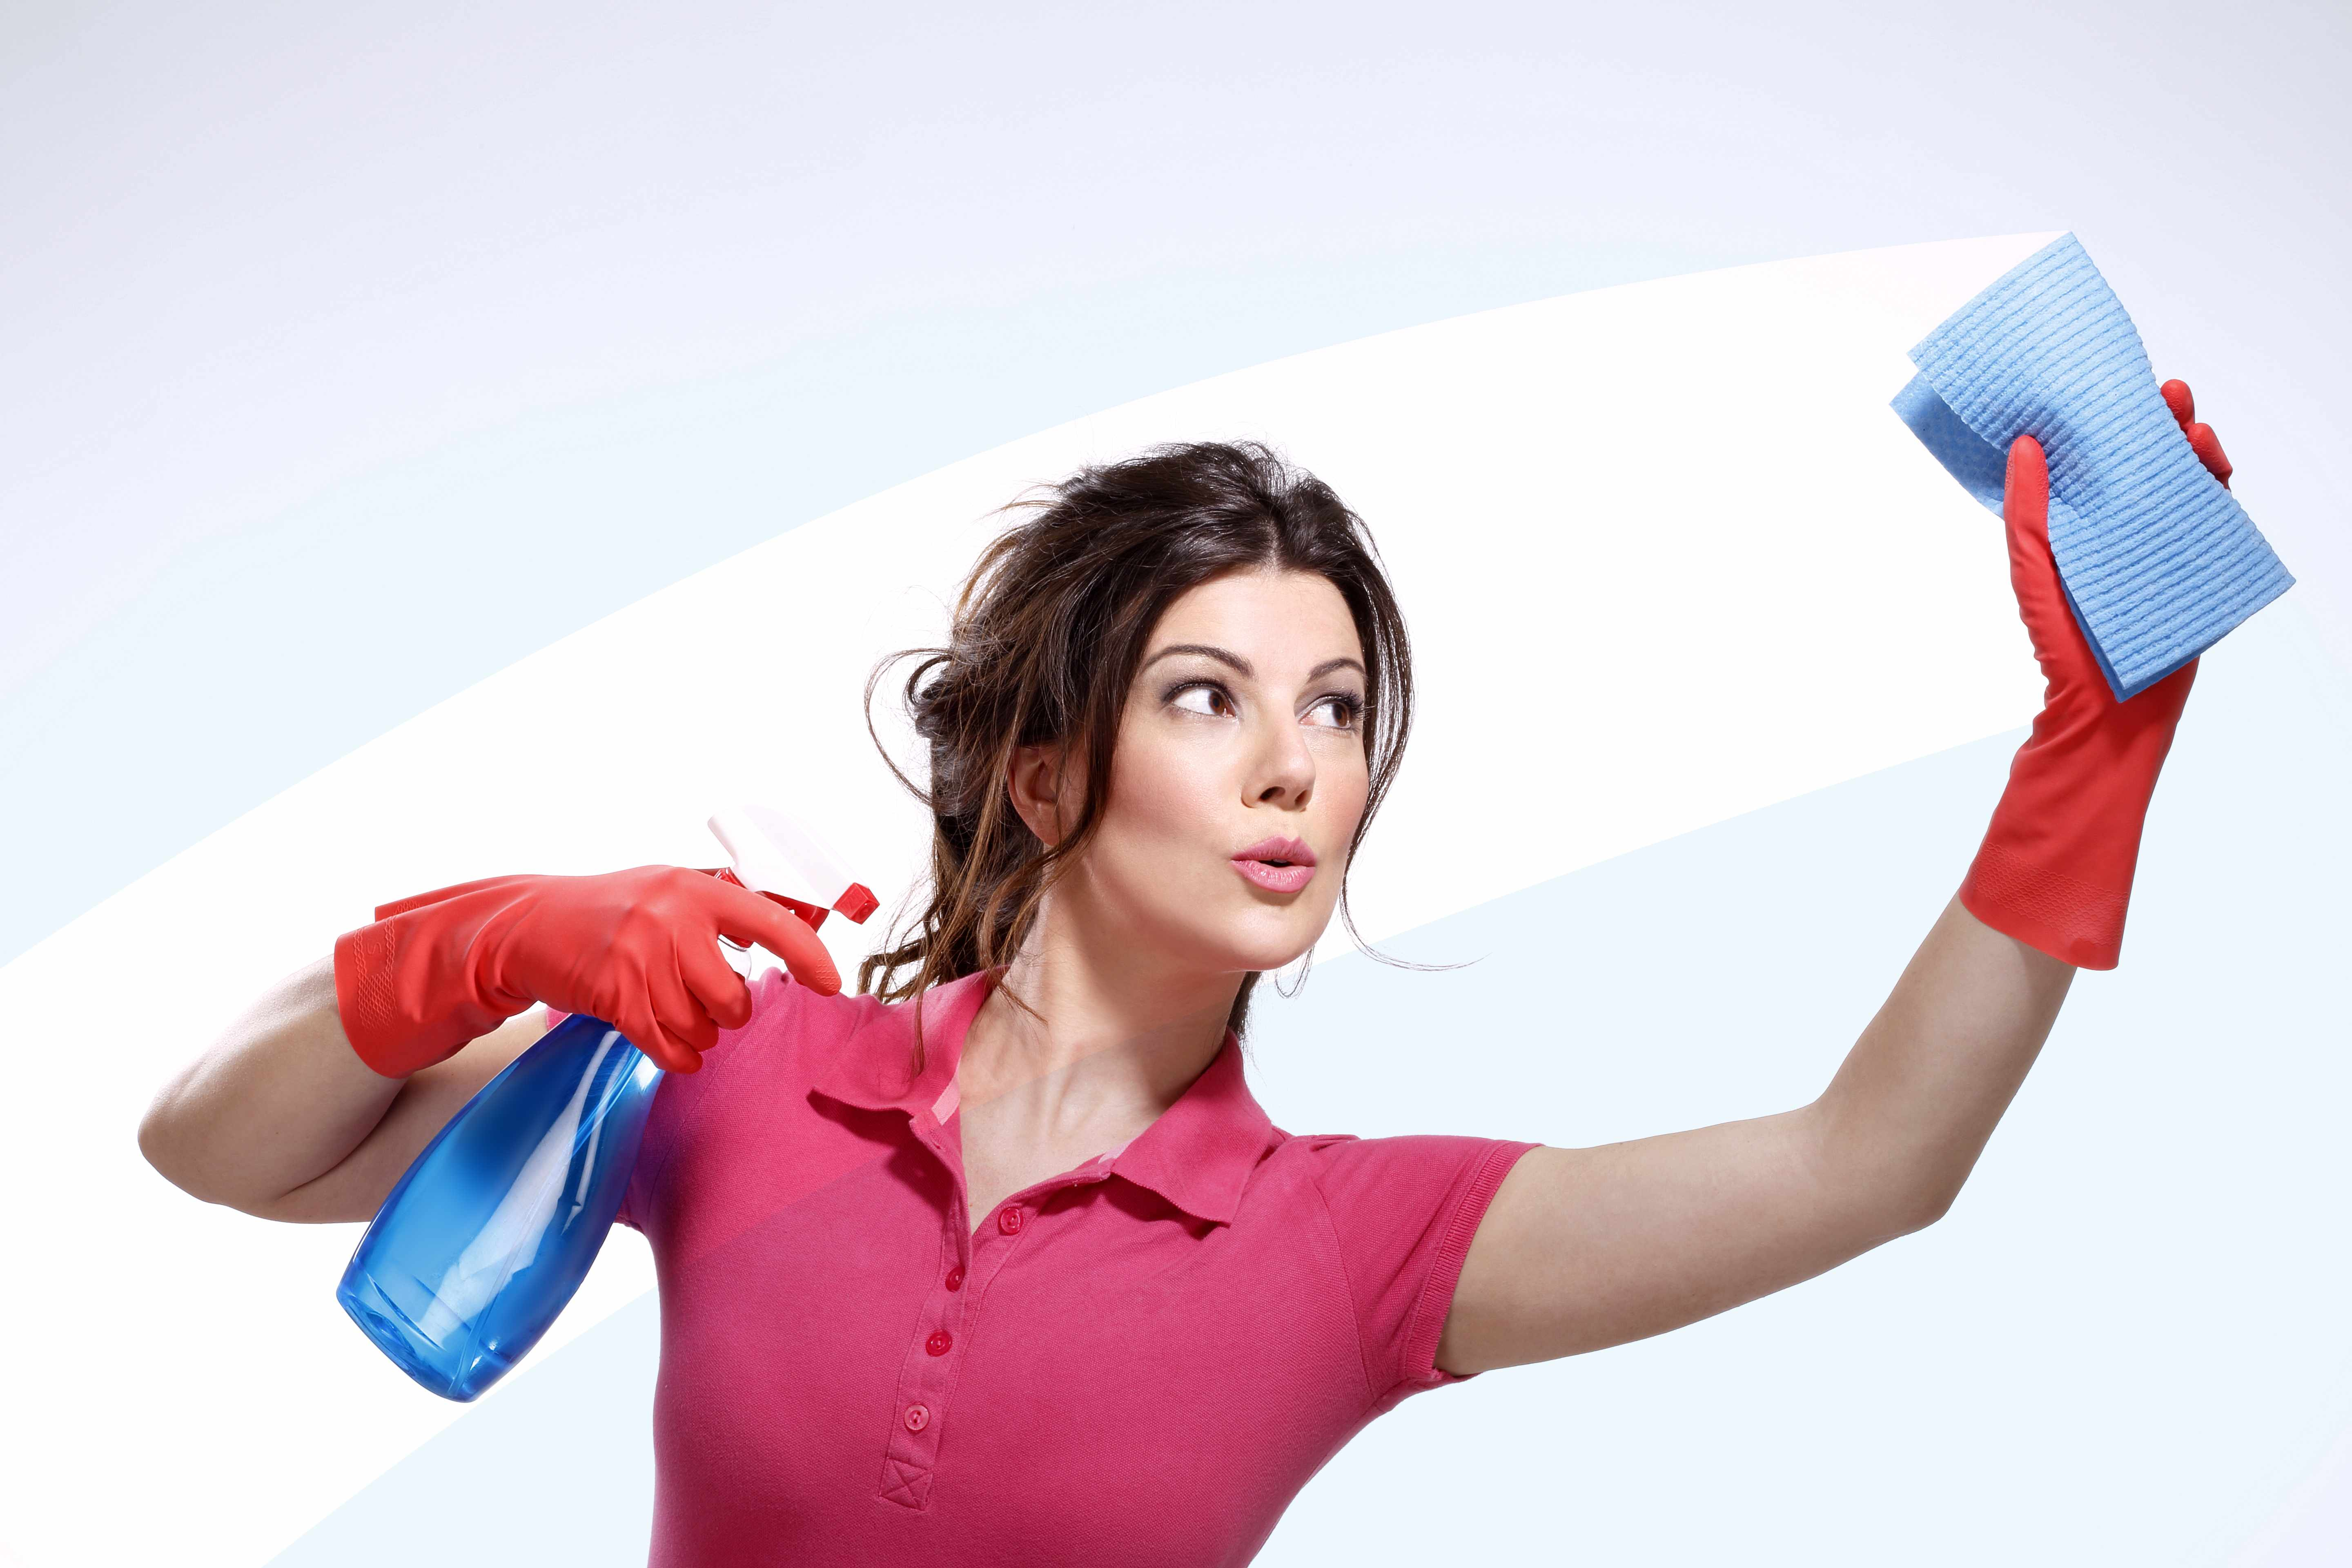 Cleaning services and supplies business for sale $70,000